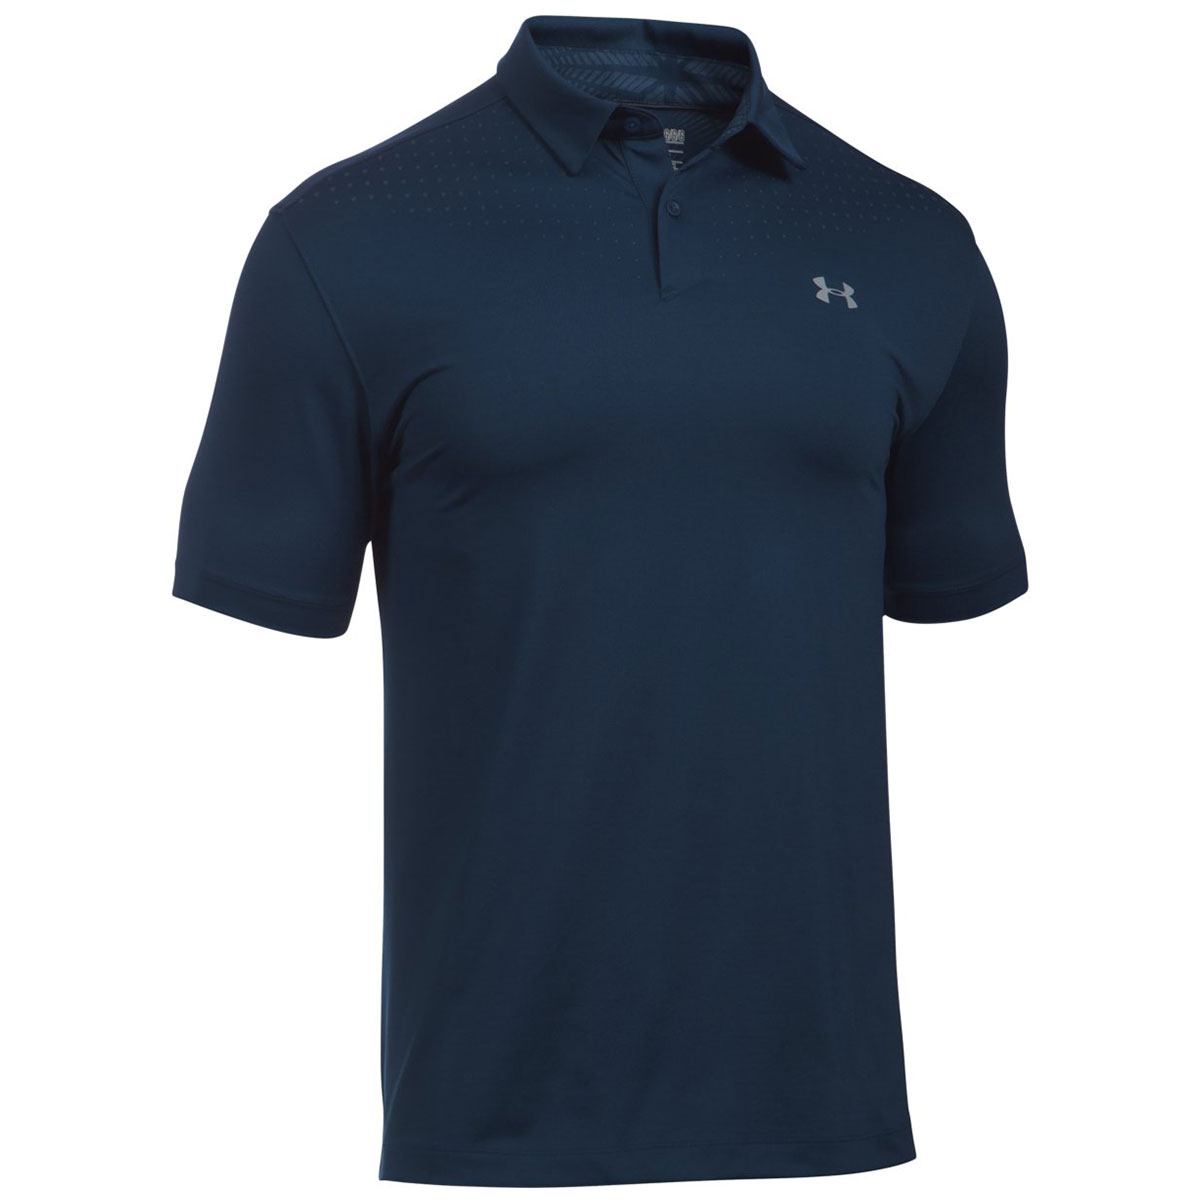 About Dick's Sporting Goods. As a leading sporting goods retailer that offers the benefits of a specialty store, Dicks Sporting Goods carries an extensive selection of clothing, footwear and accessories for athletics, team sports and exercise.